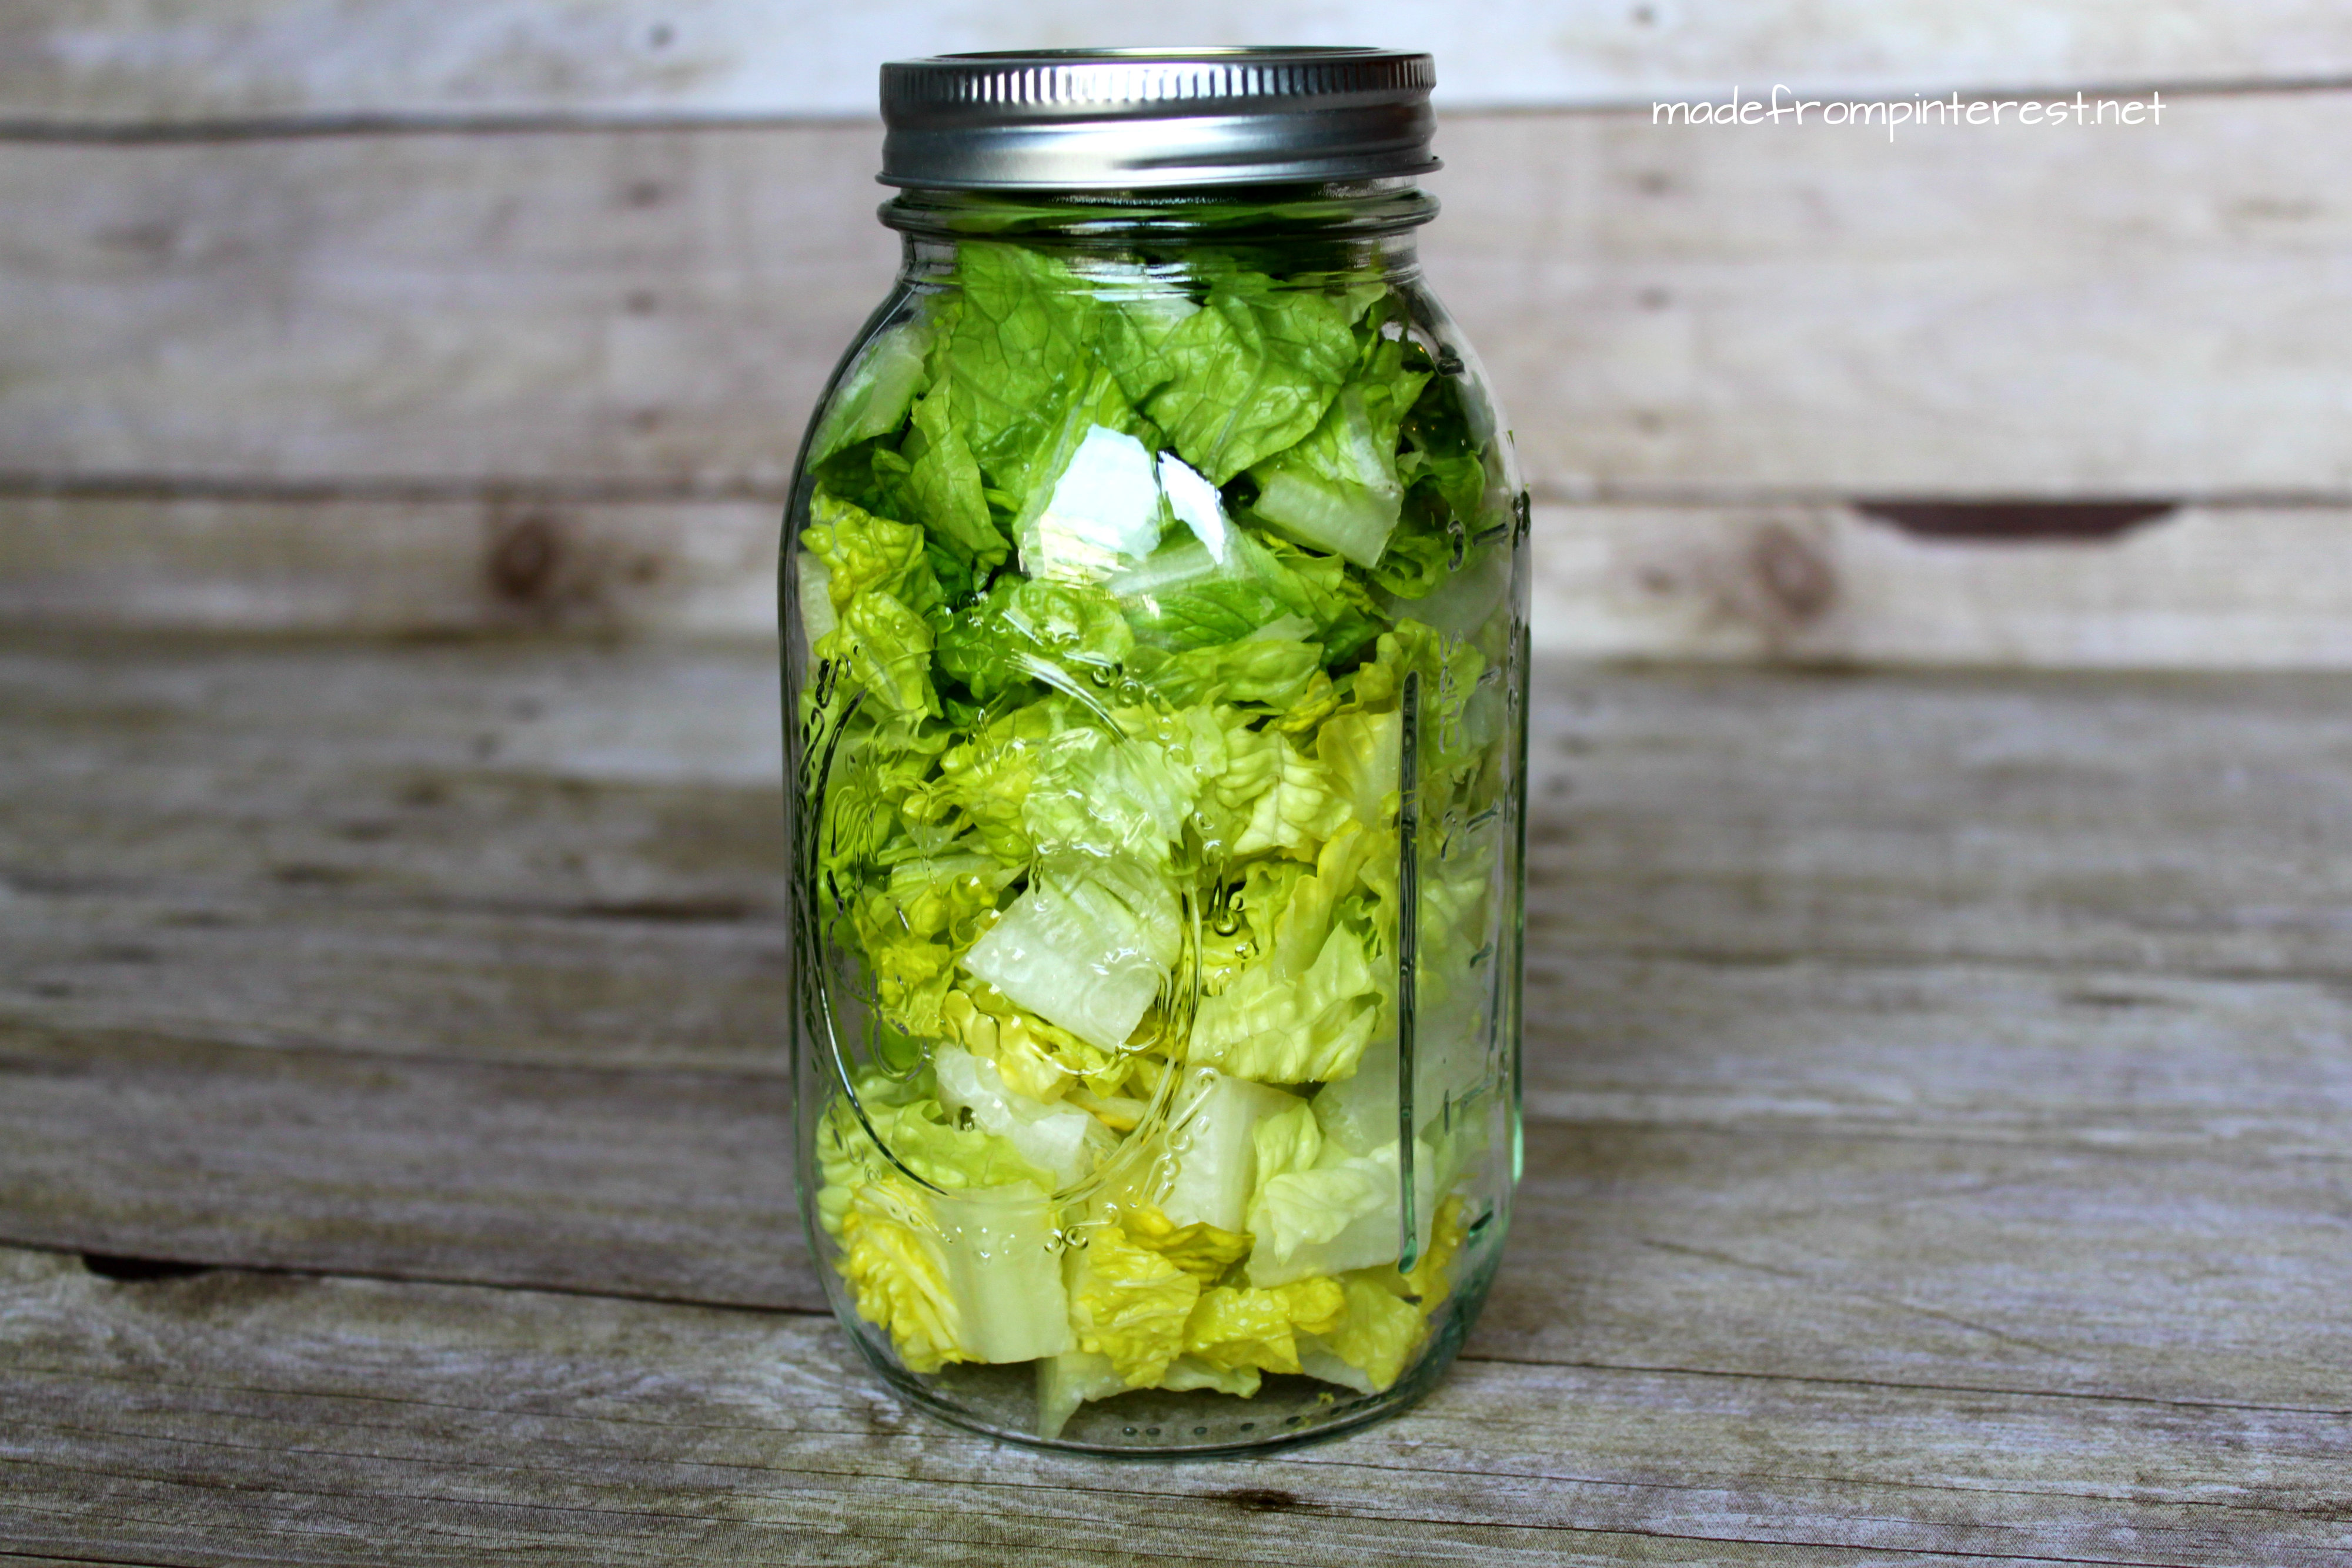 Madefrompinterest.net lettuce storage contest winner. Stores more lettuce and takes less space in the fridge